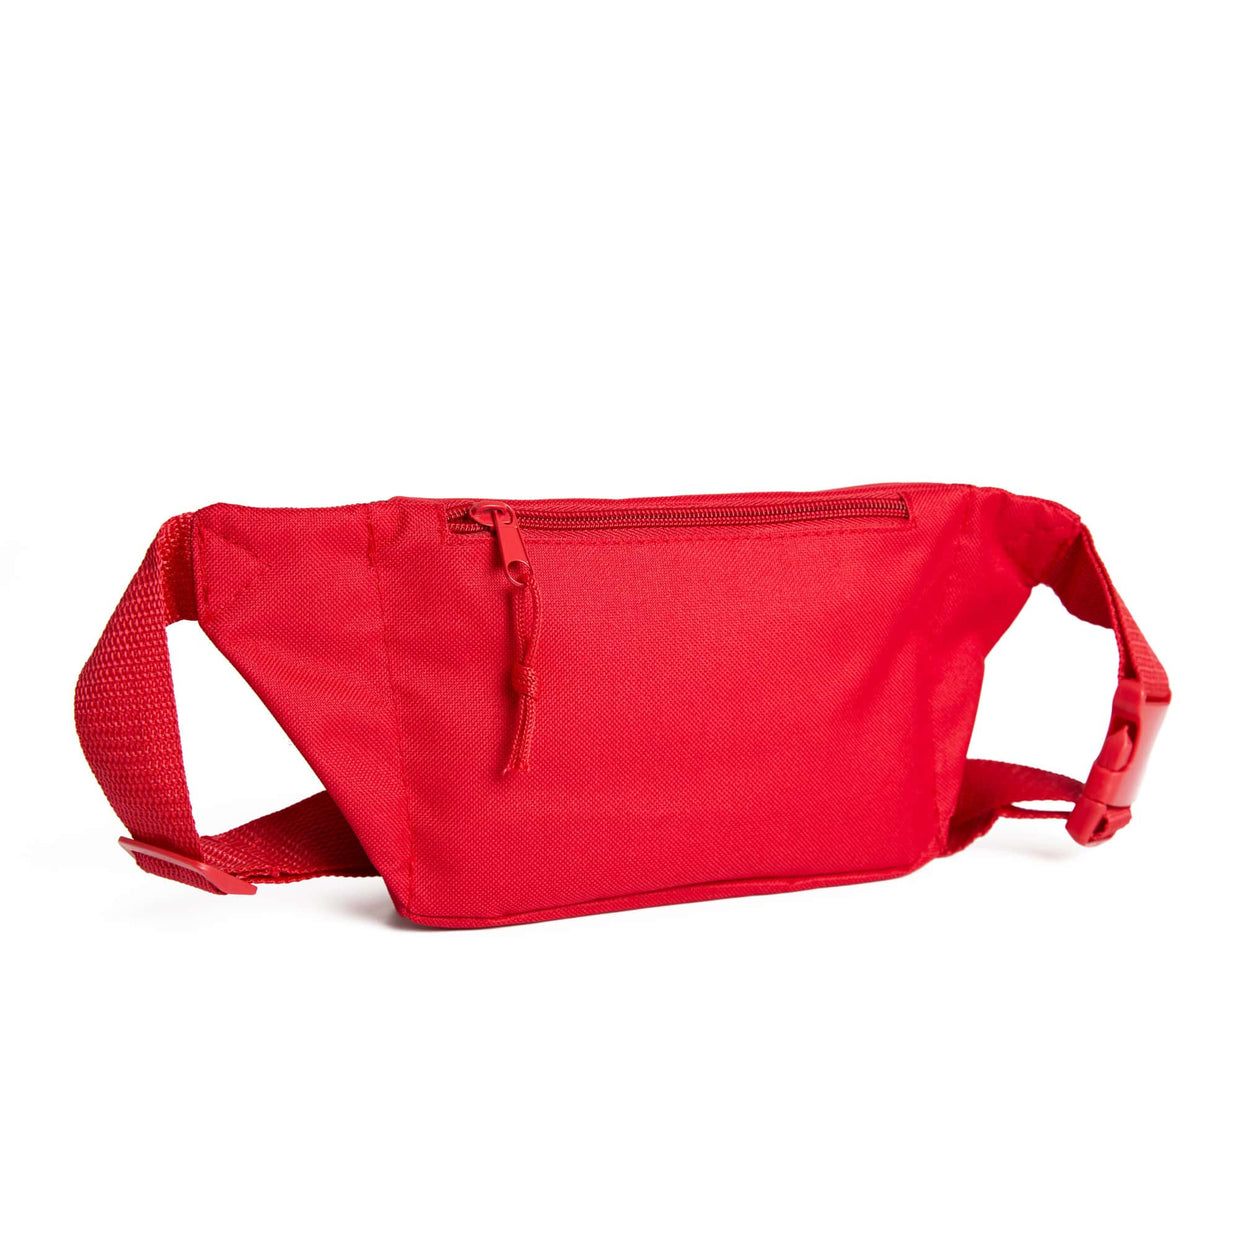 'Austin City Limits' Sling Bag